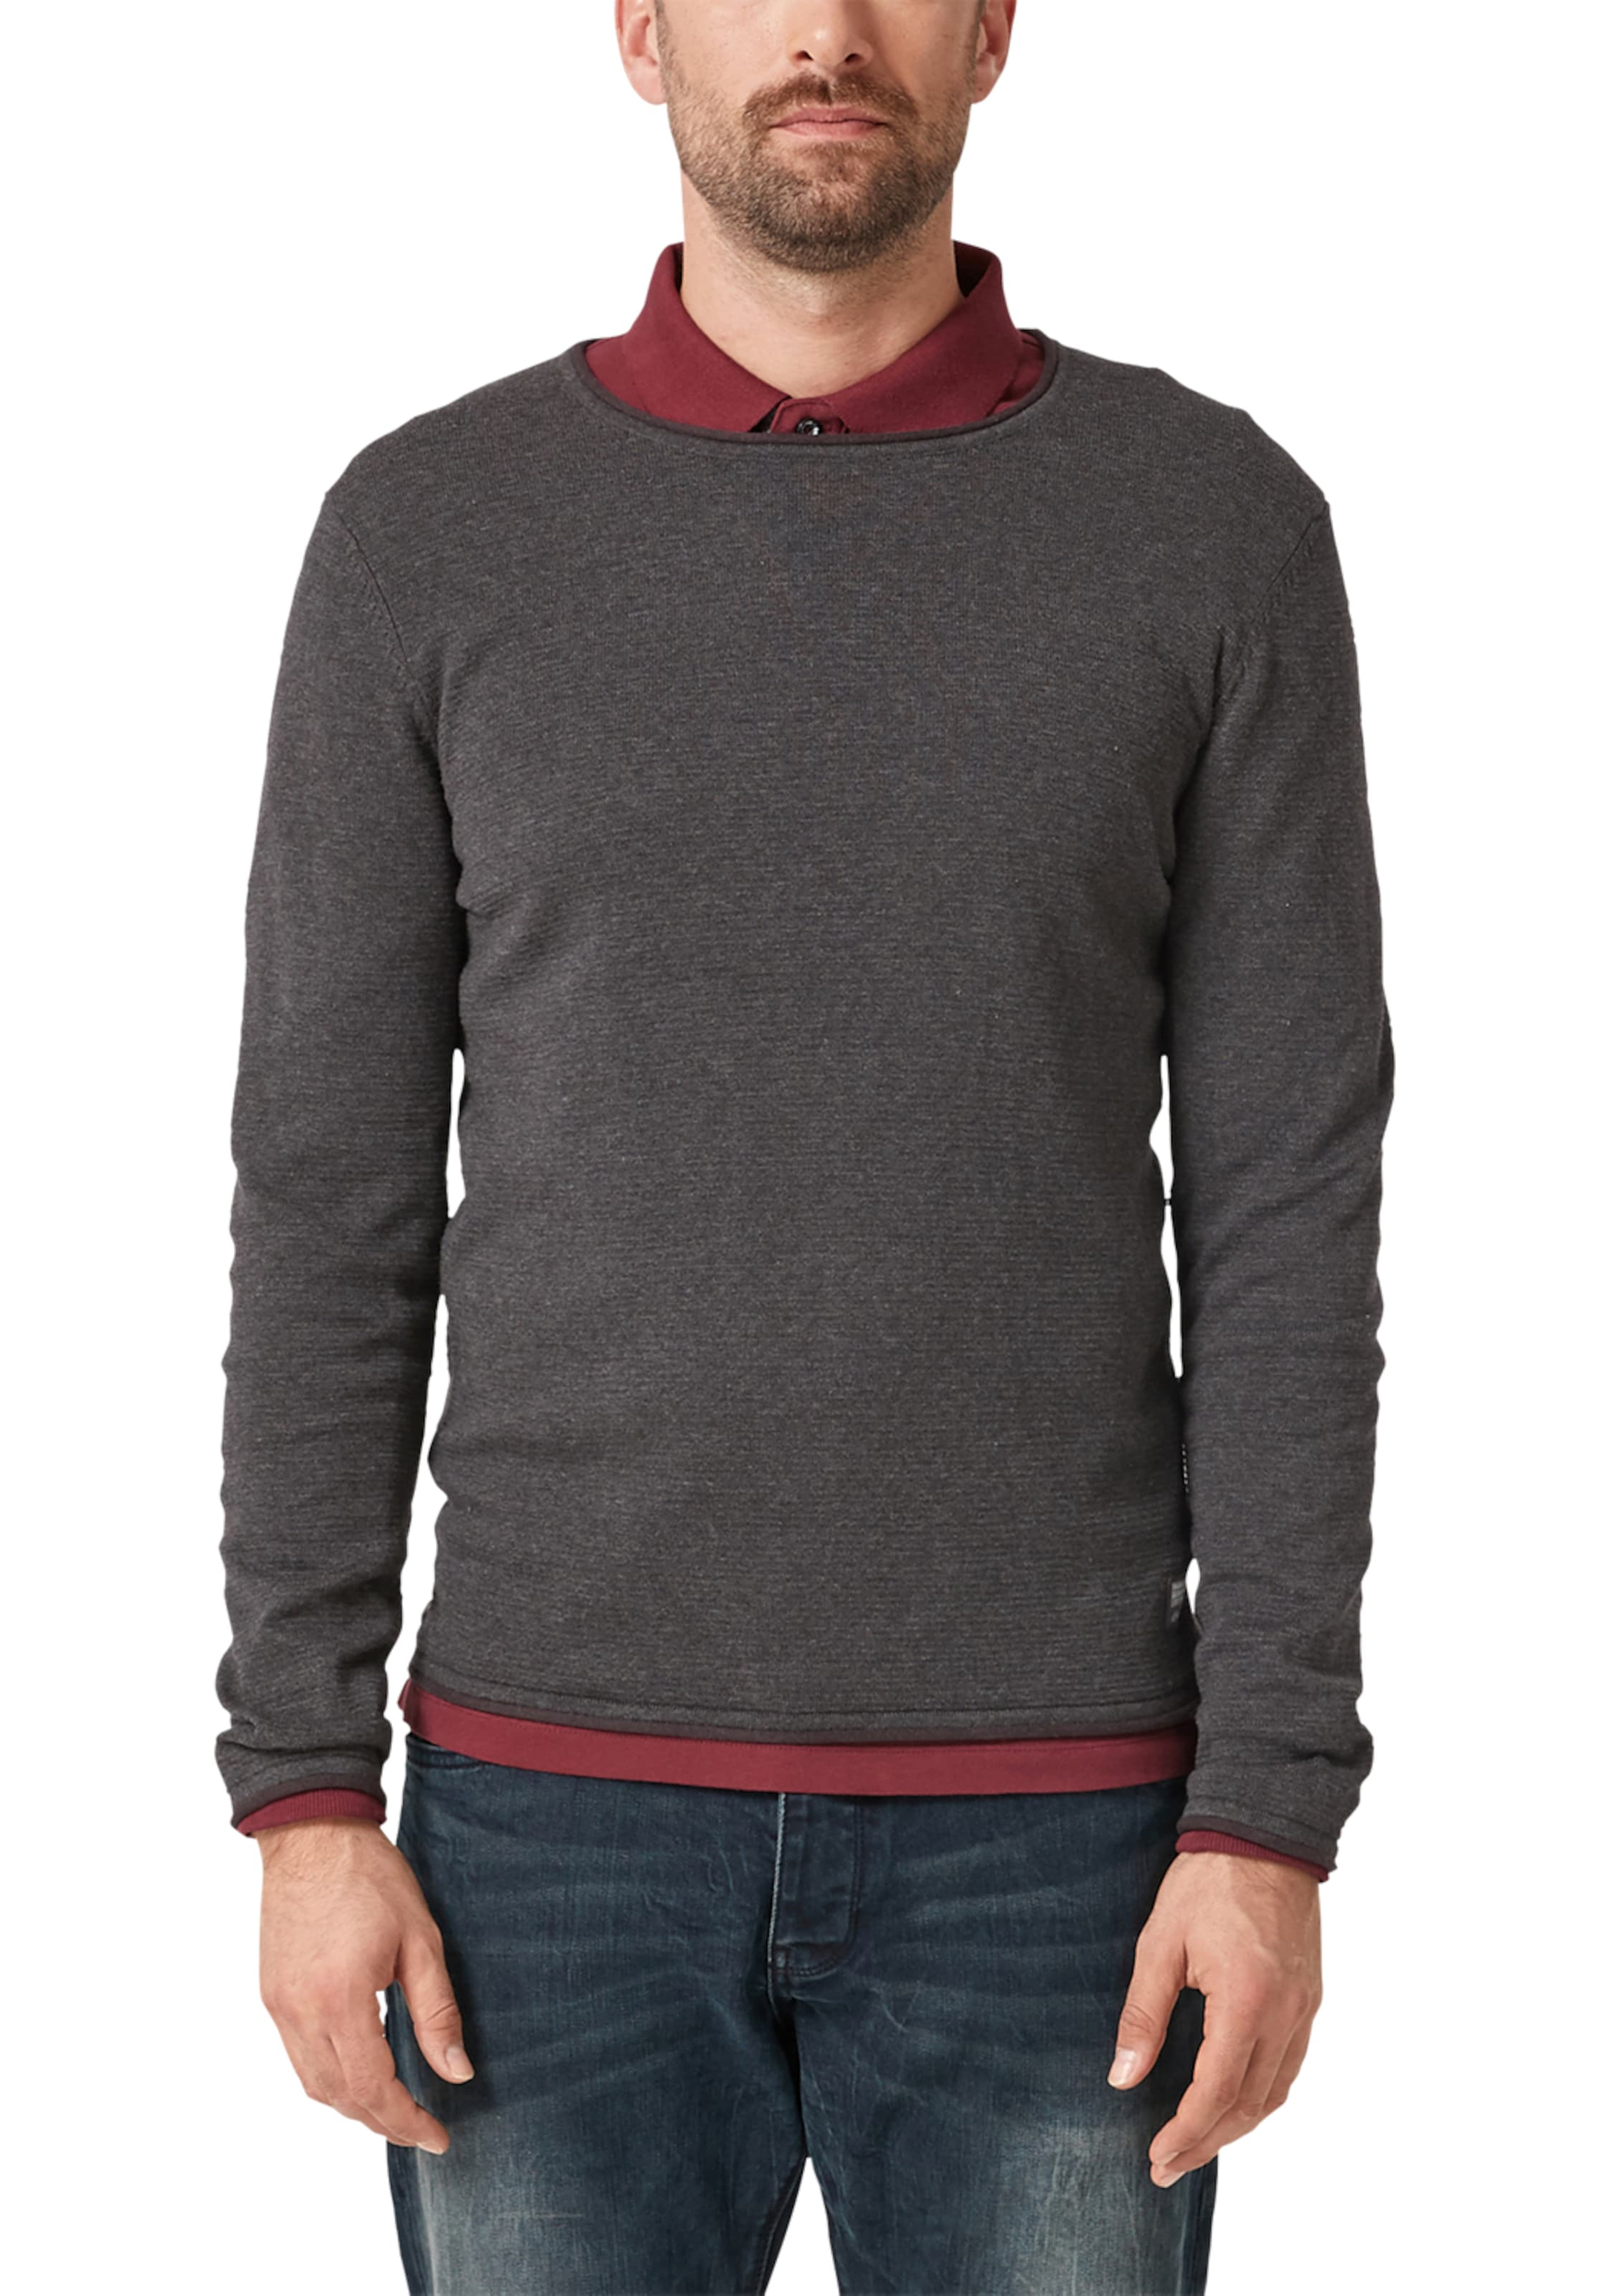 Label In oliver S GraphitAubergine Red Pullover KTlFc1J